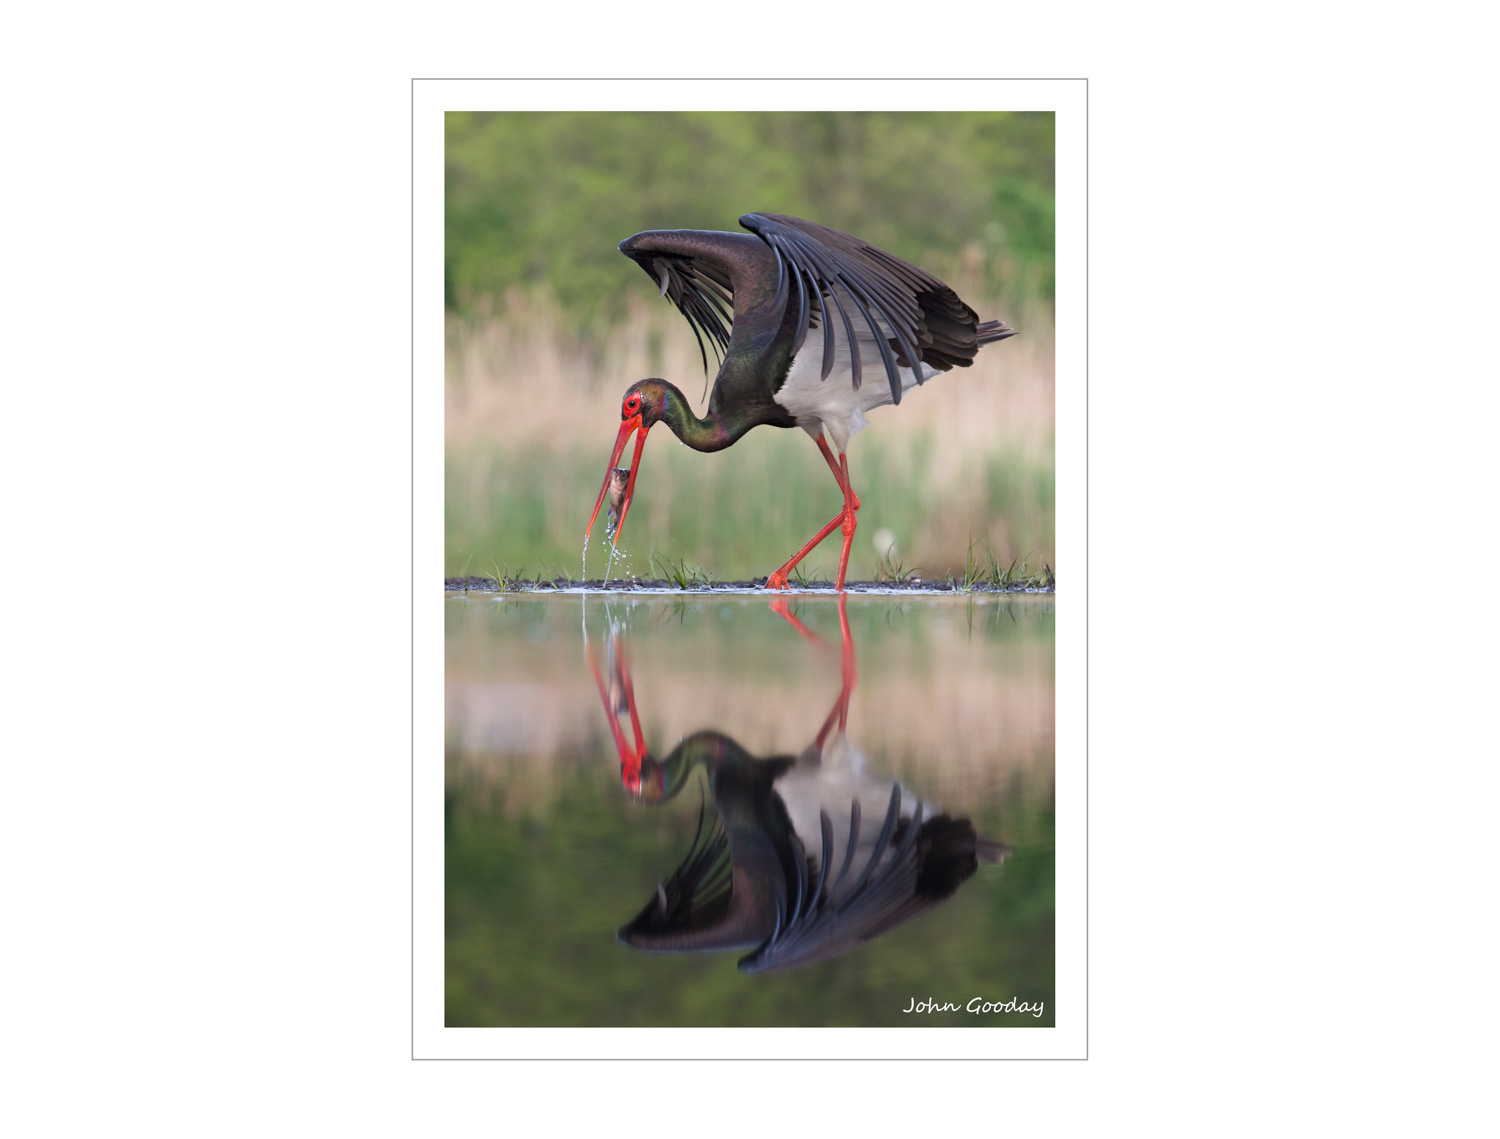 (Image: Black Stork catching a fish. Canon EOS 1DX, EF70-200mm f/2.8L IS II, 1/1600 sec @ f/5, ISO 1250, tripod, hide)